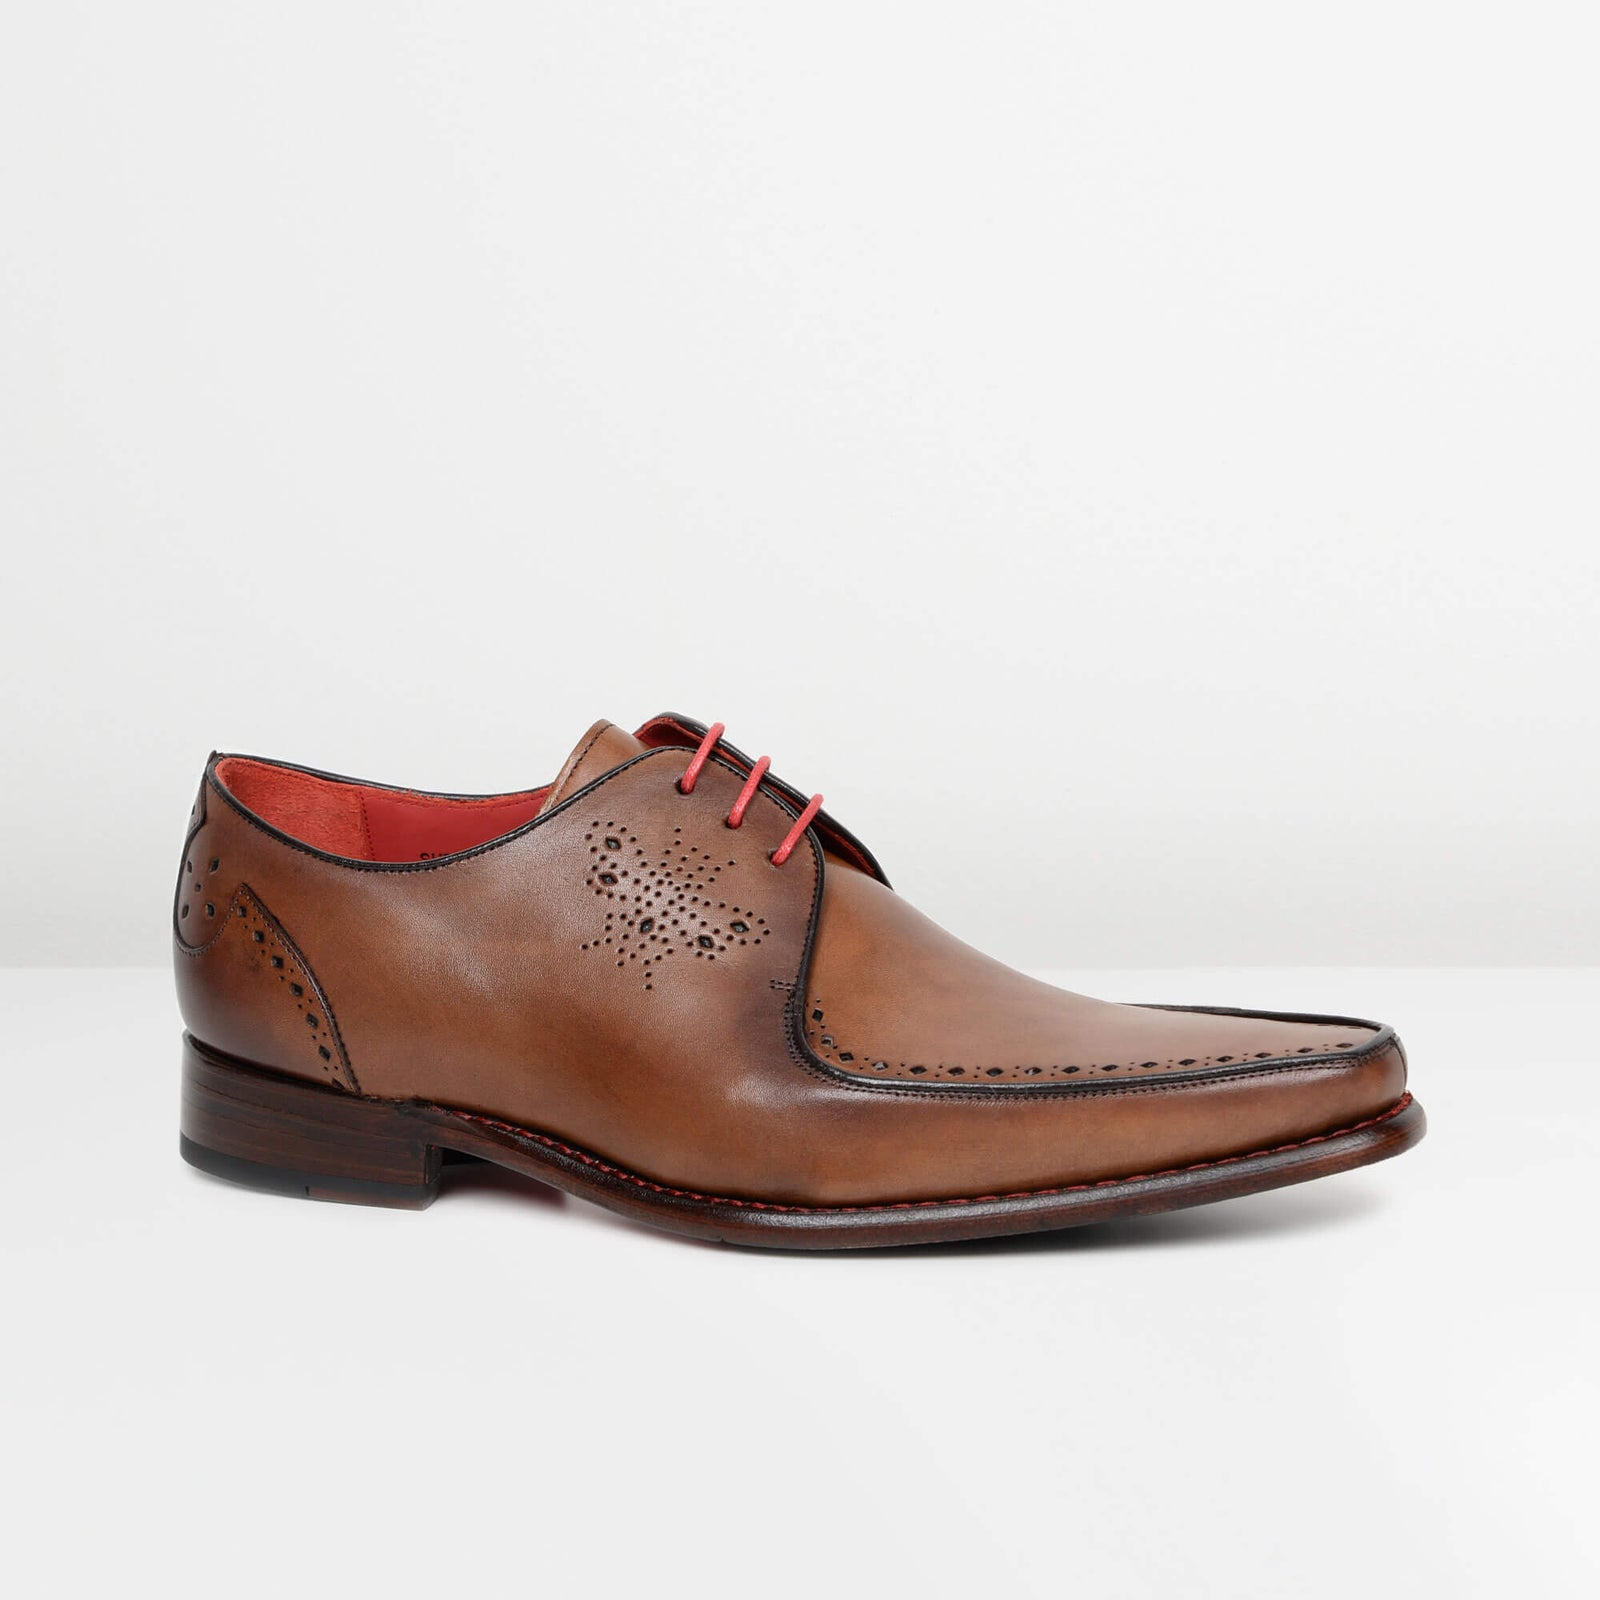 Crust Mahogany Melly 'Surreal' Gibson Shoes